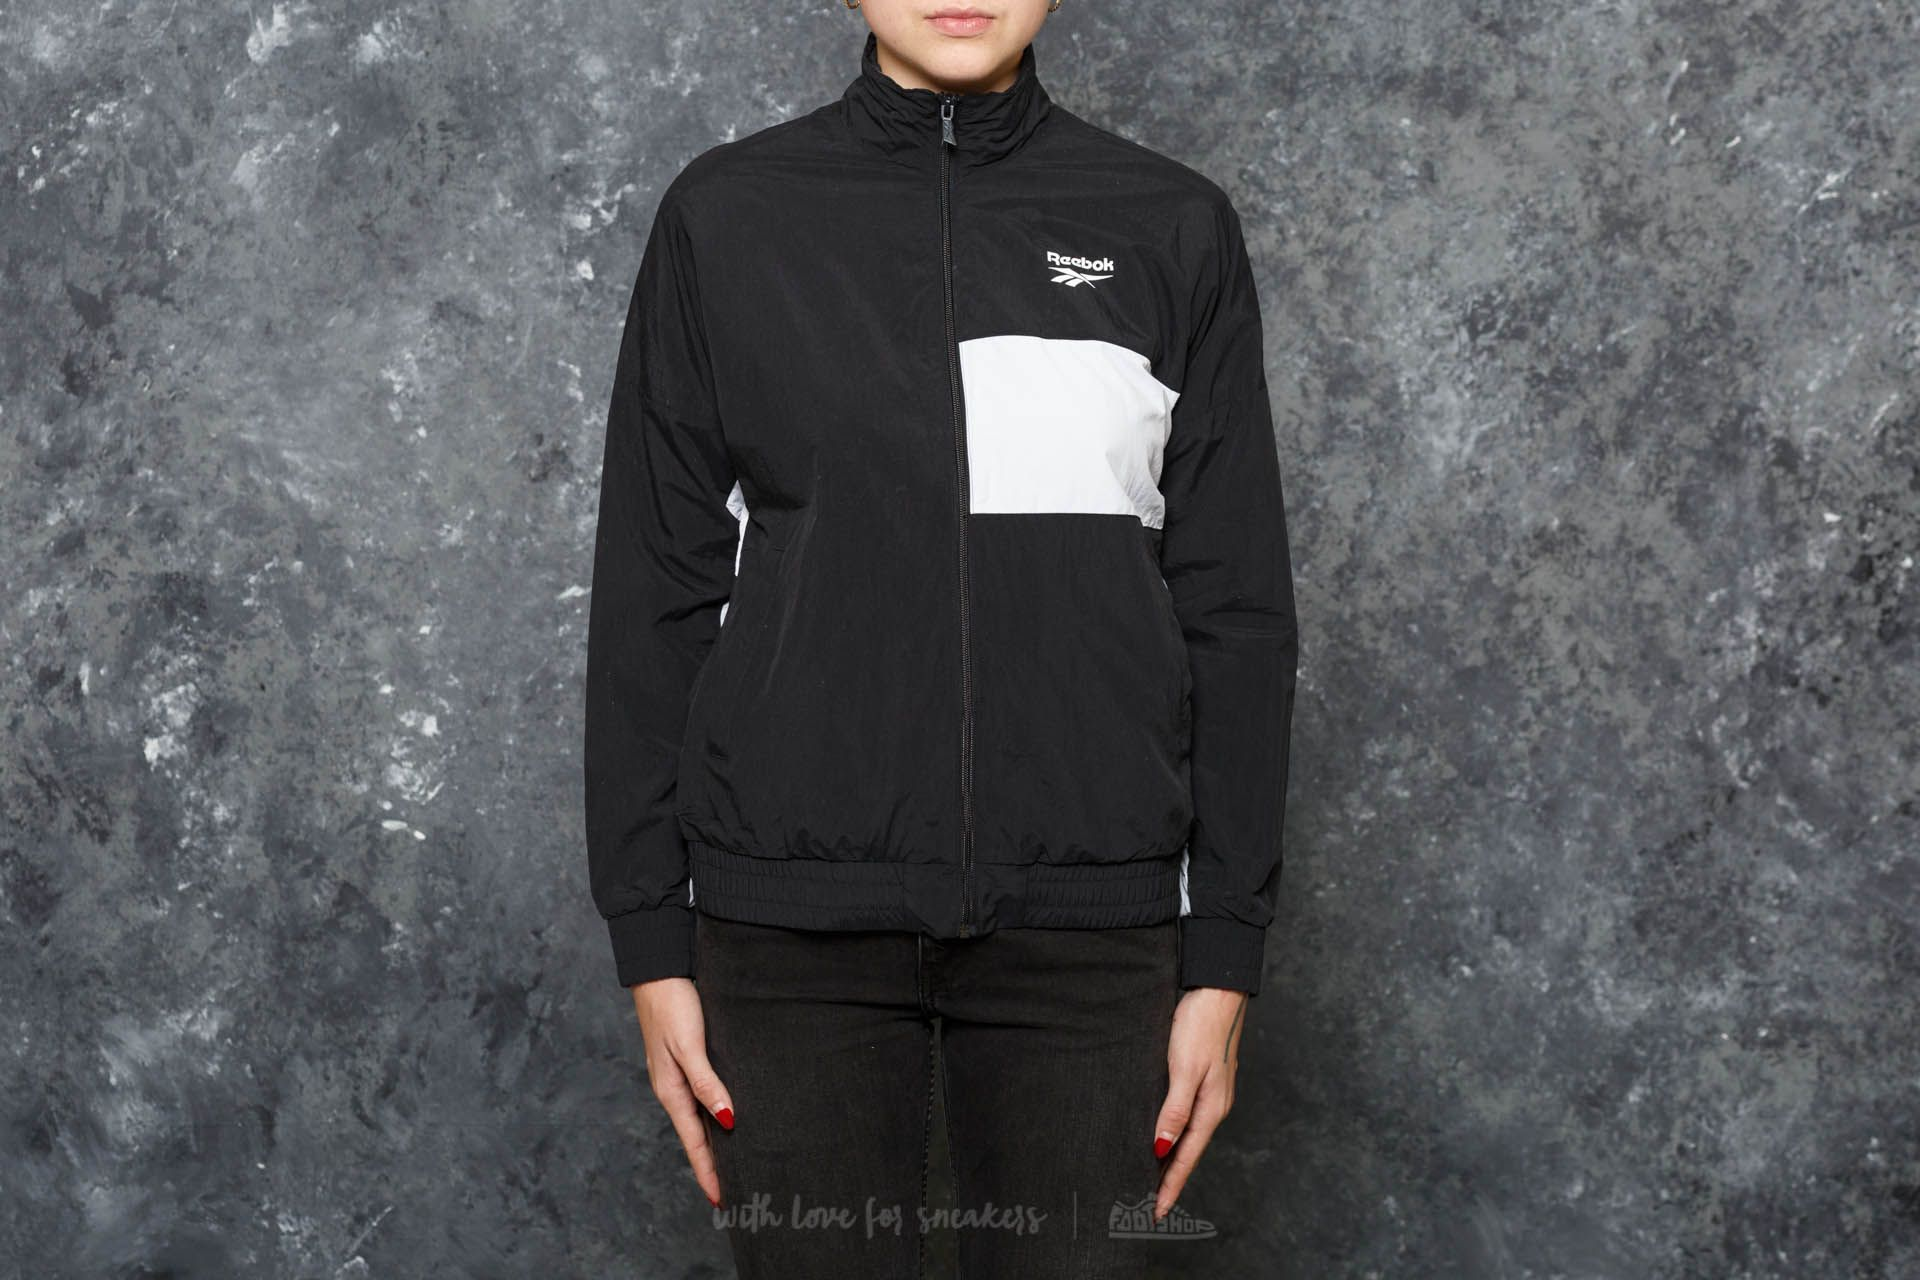 Reebok LF Vector Jacket